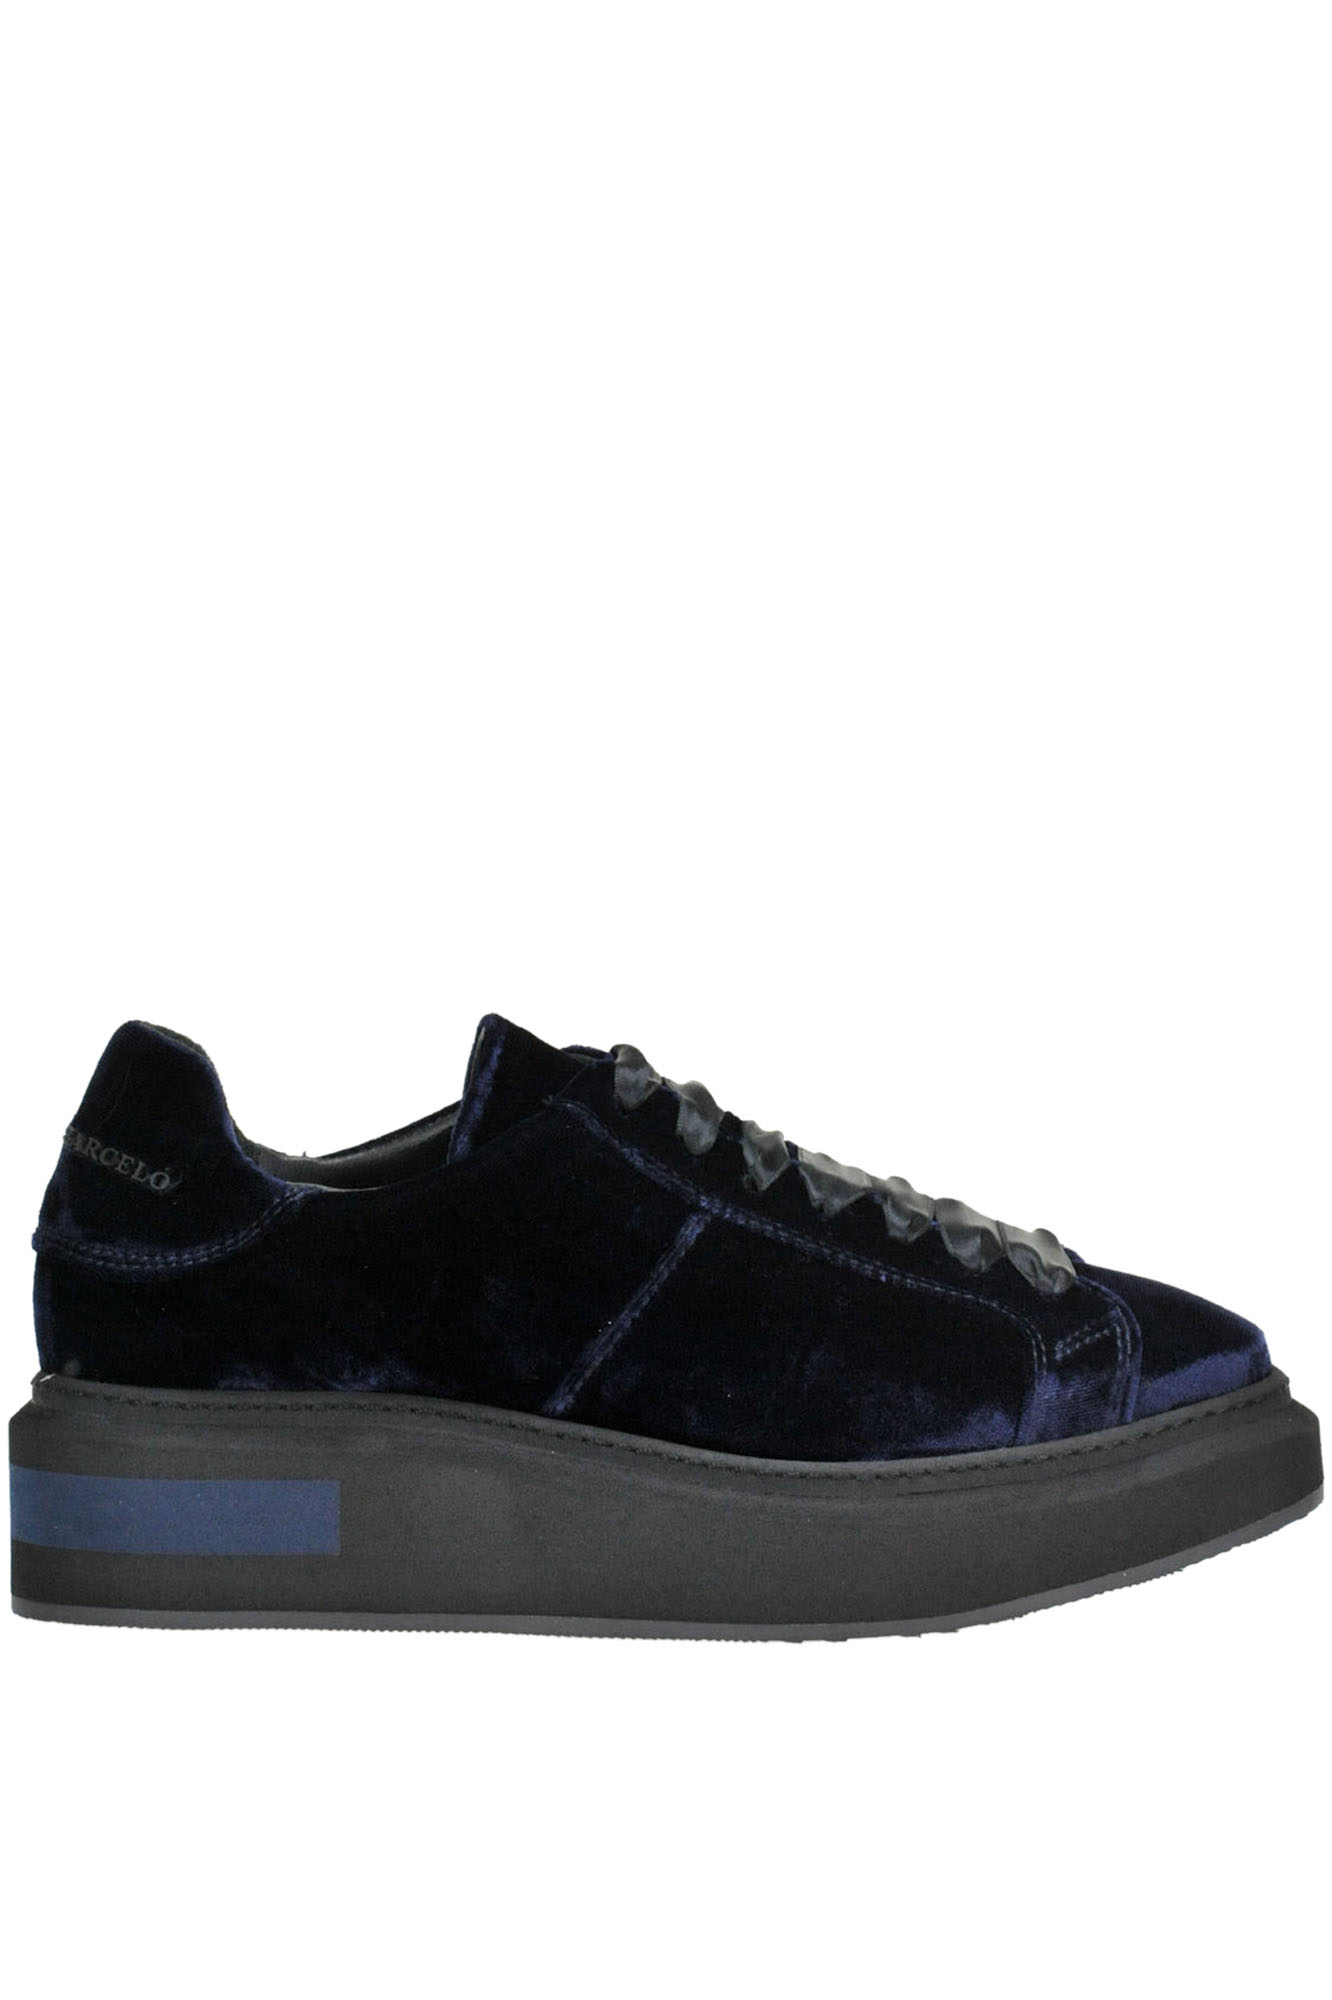 Trafalgar Square Velvet Sneakers in Navy Blue